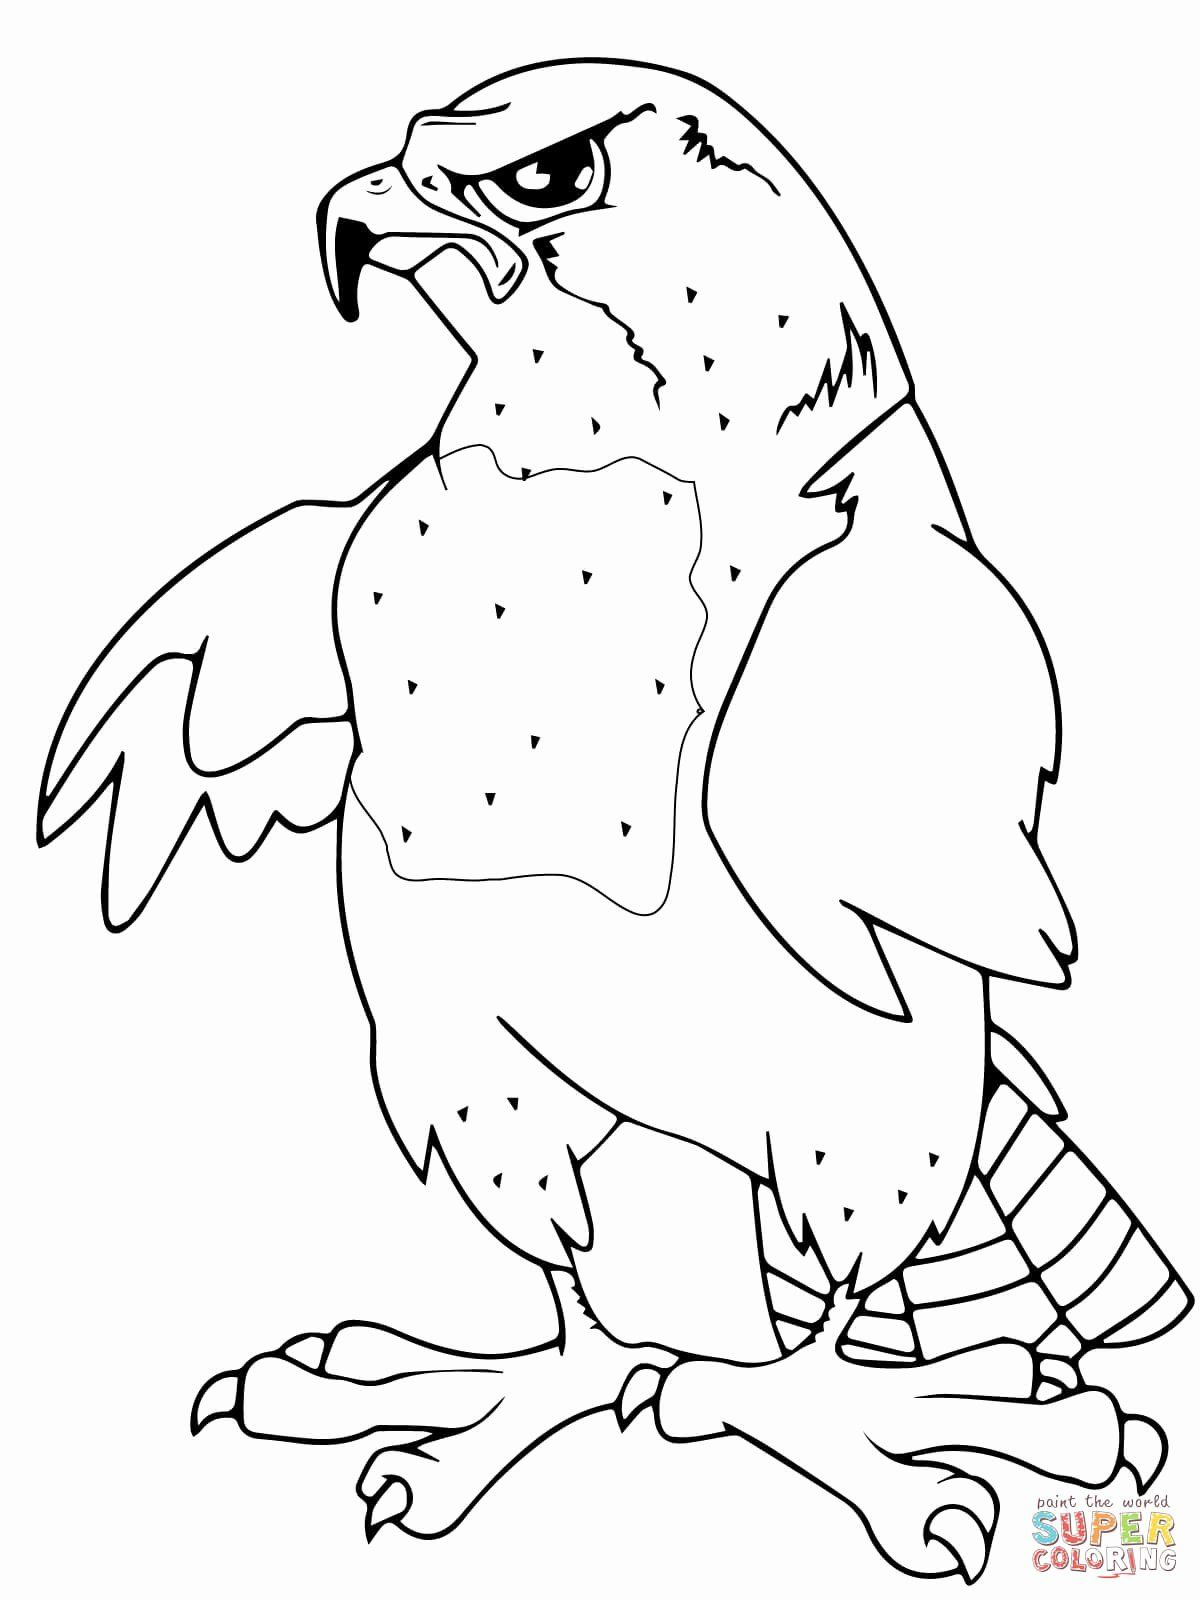 Peregrine Falcon Coloring Page Awesome Falcons Coloring Pages Coloring Pages Peregrine Falcon Coloring Pages Inspirational